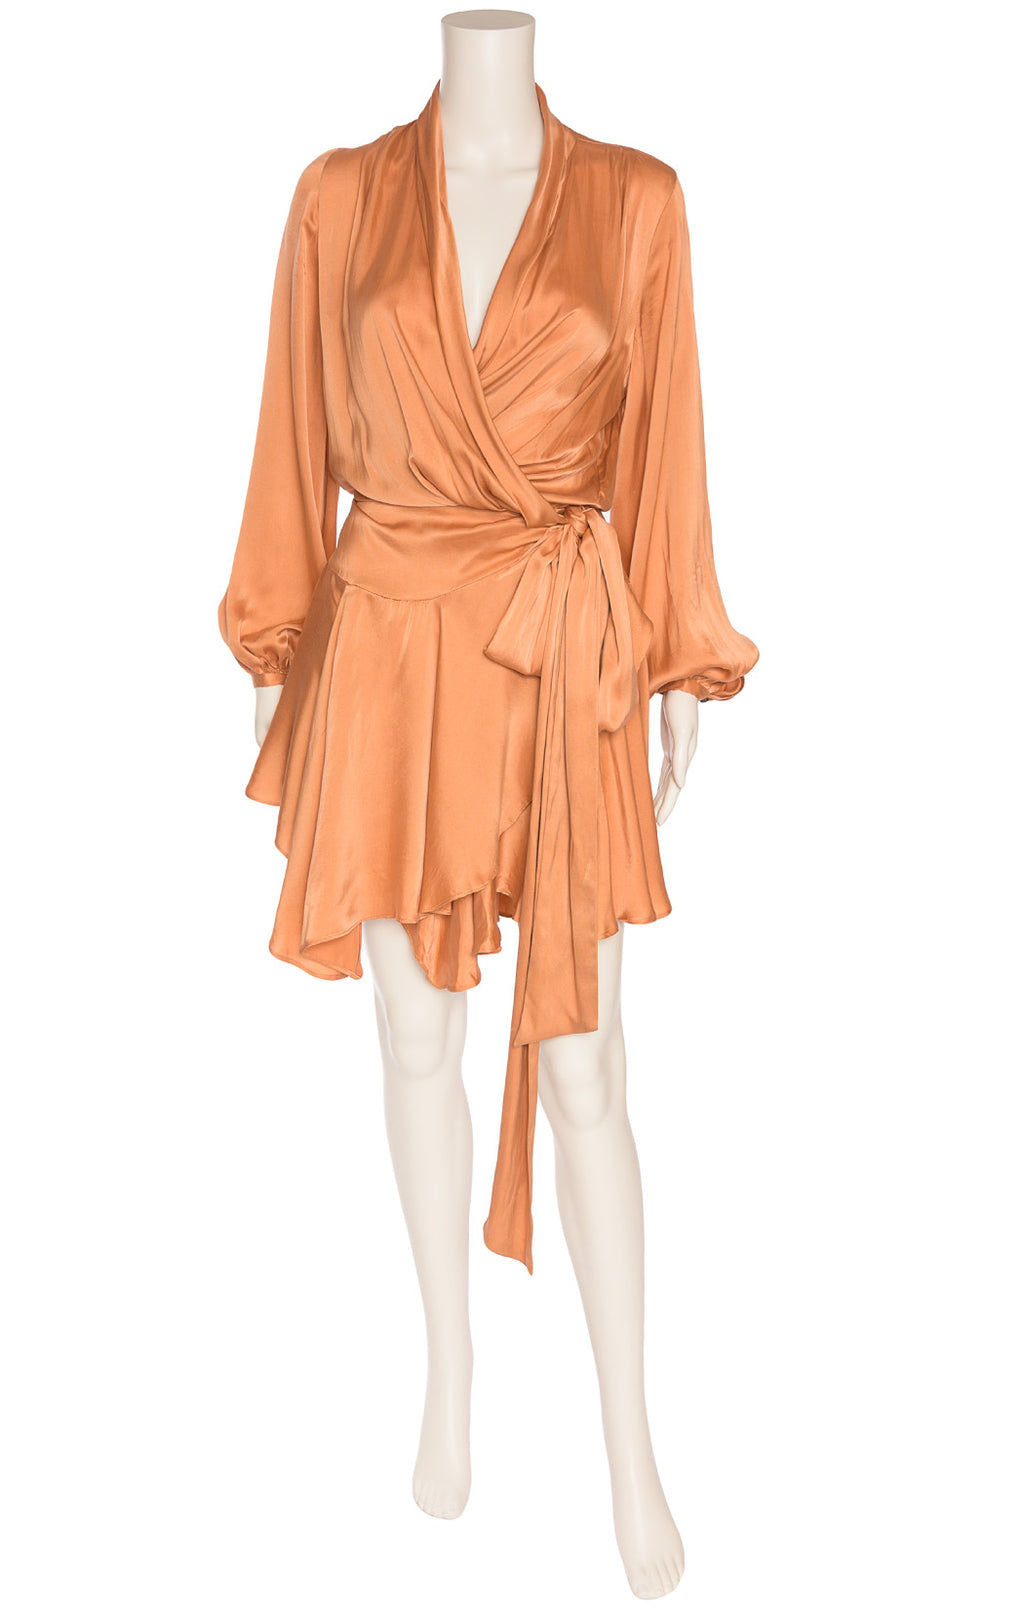 Peach colored wrap asymmetrical dress with long sleeves